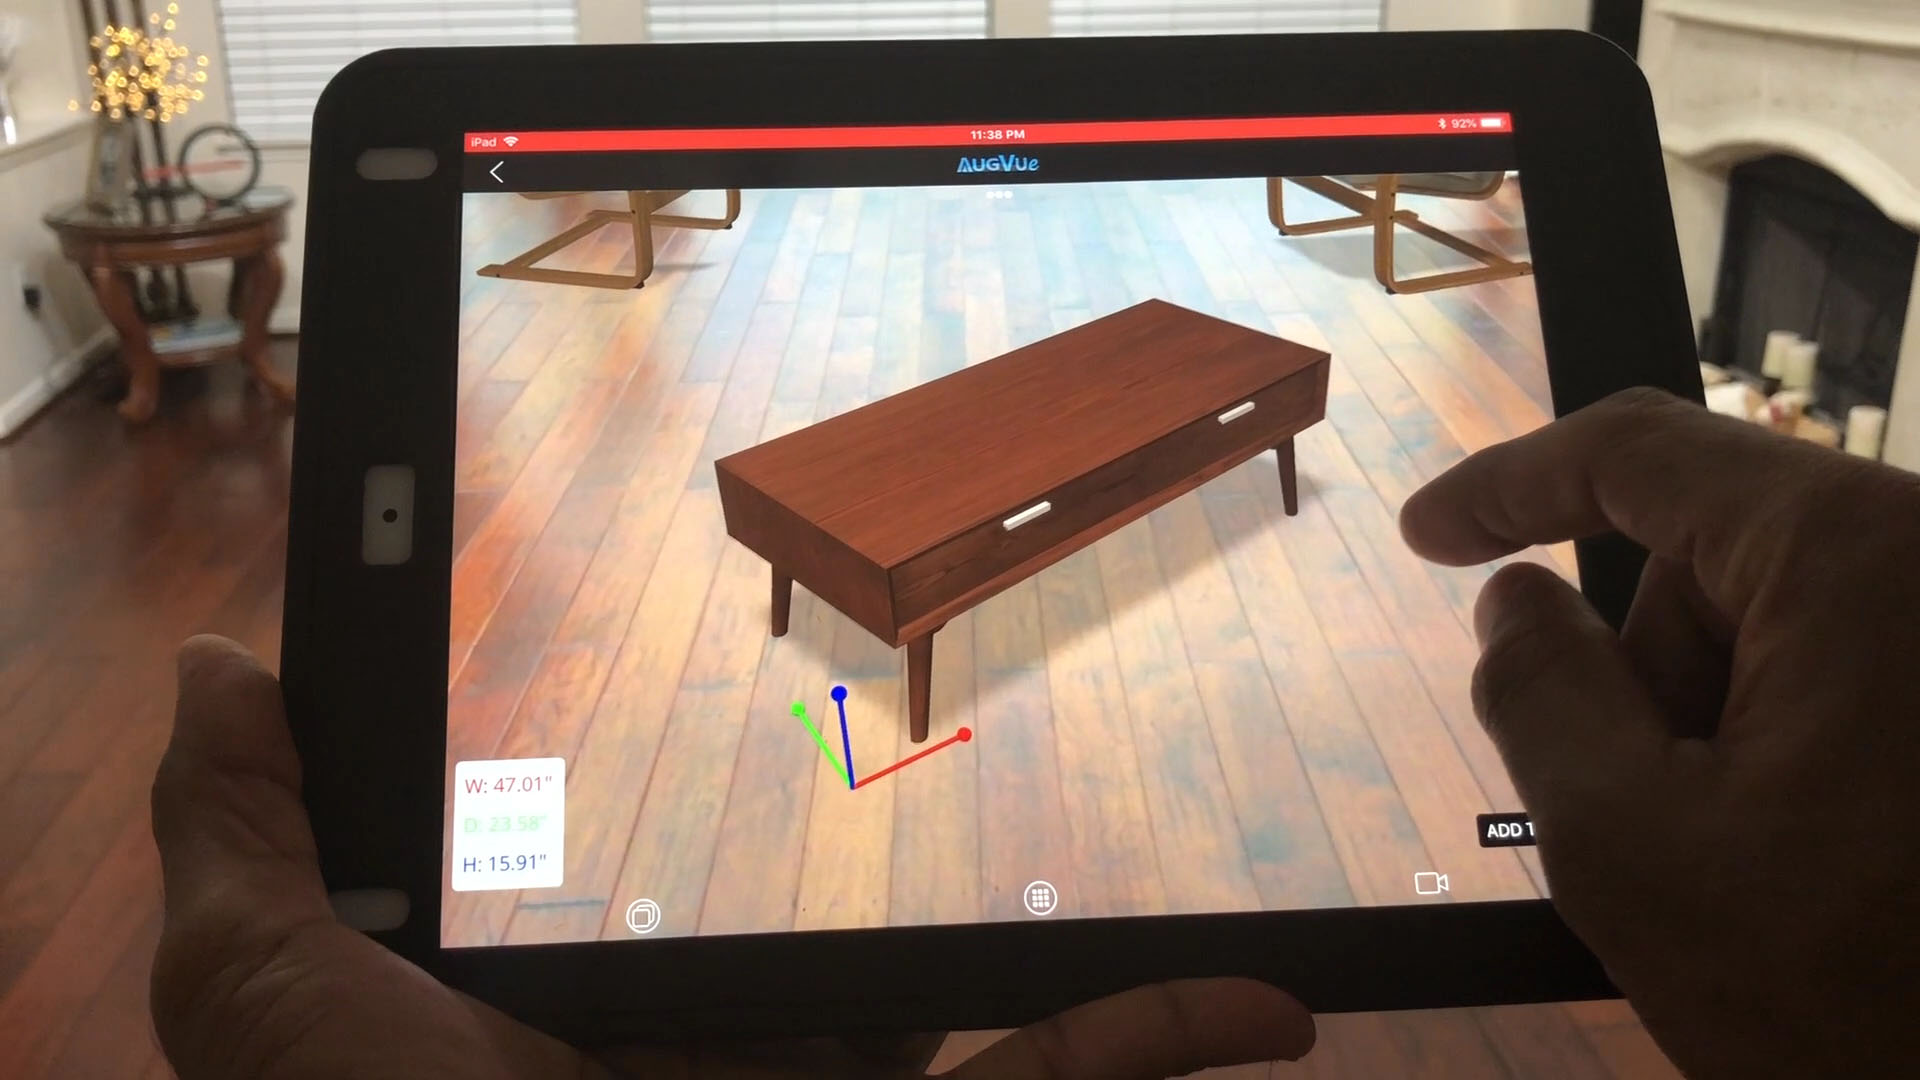 A tablet being held by a person with a virtual coffee table displaying in the person's room